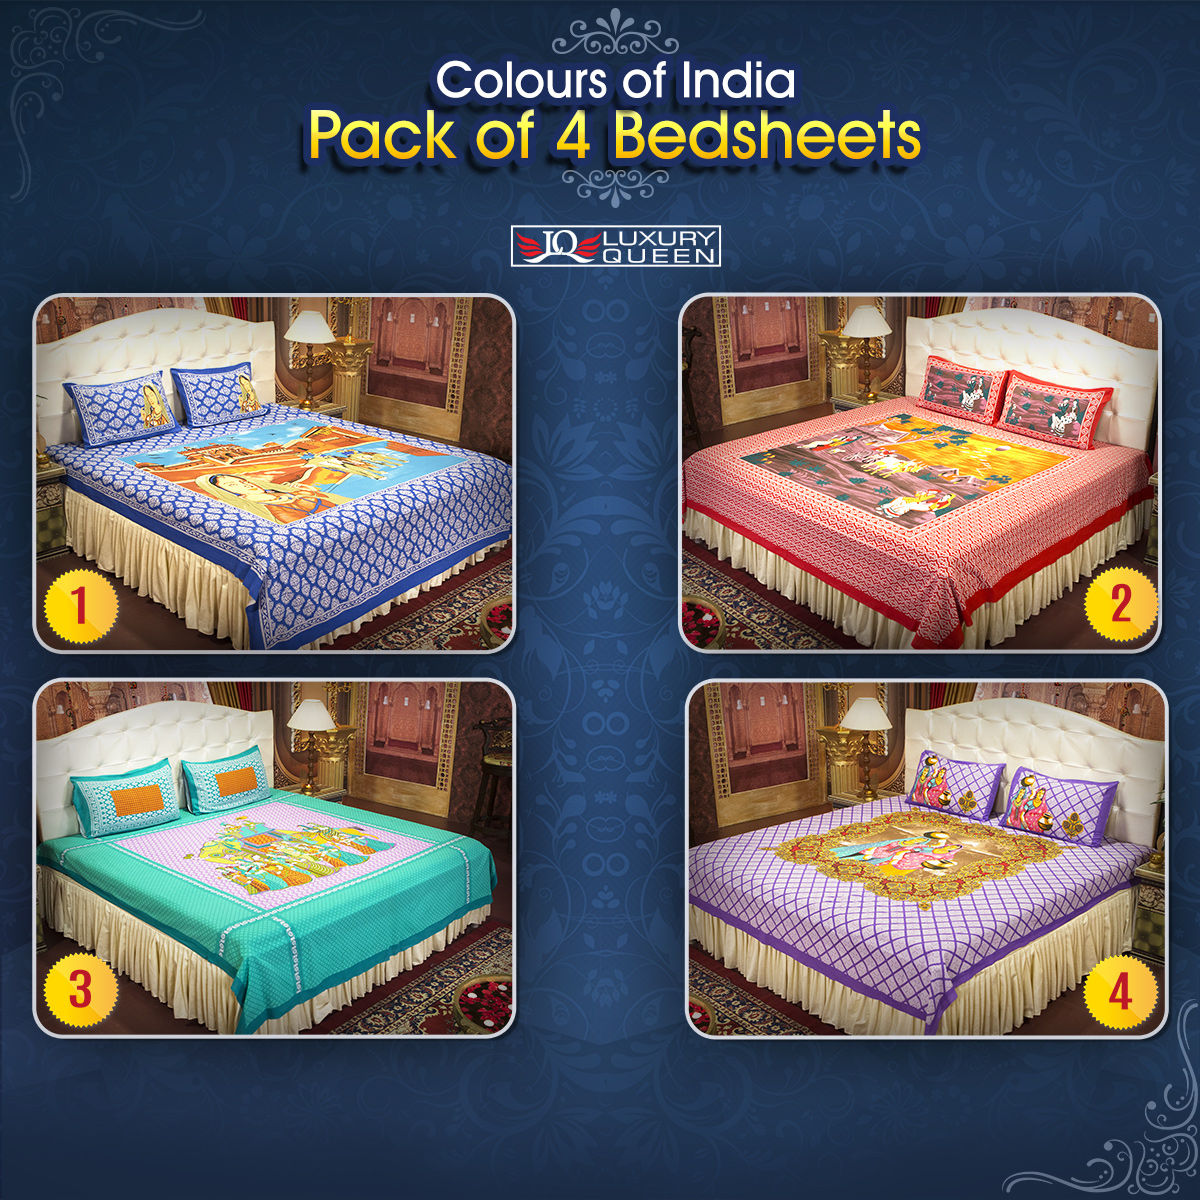 Picture of: Buy Colours Of India Pack Of 4 Bedsheets 4ddbs3 Online At Best Price In India On Naaptol Com